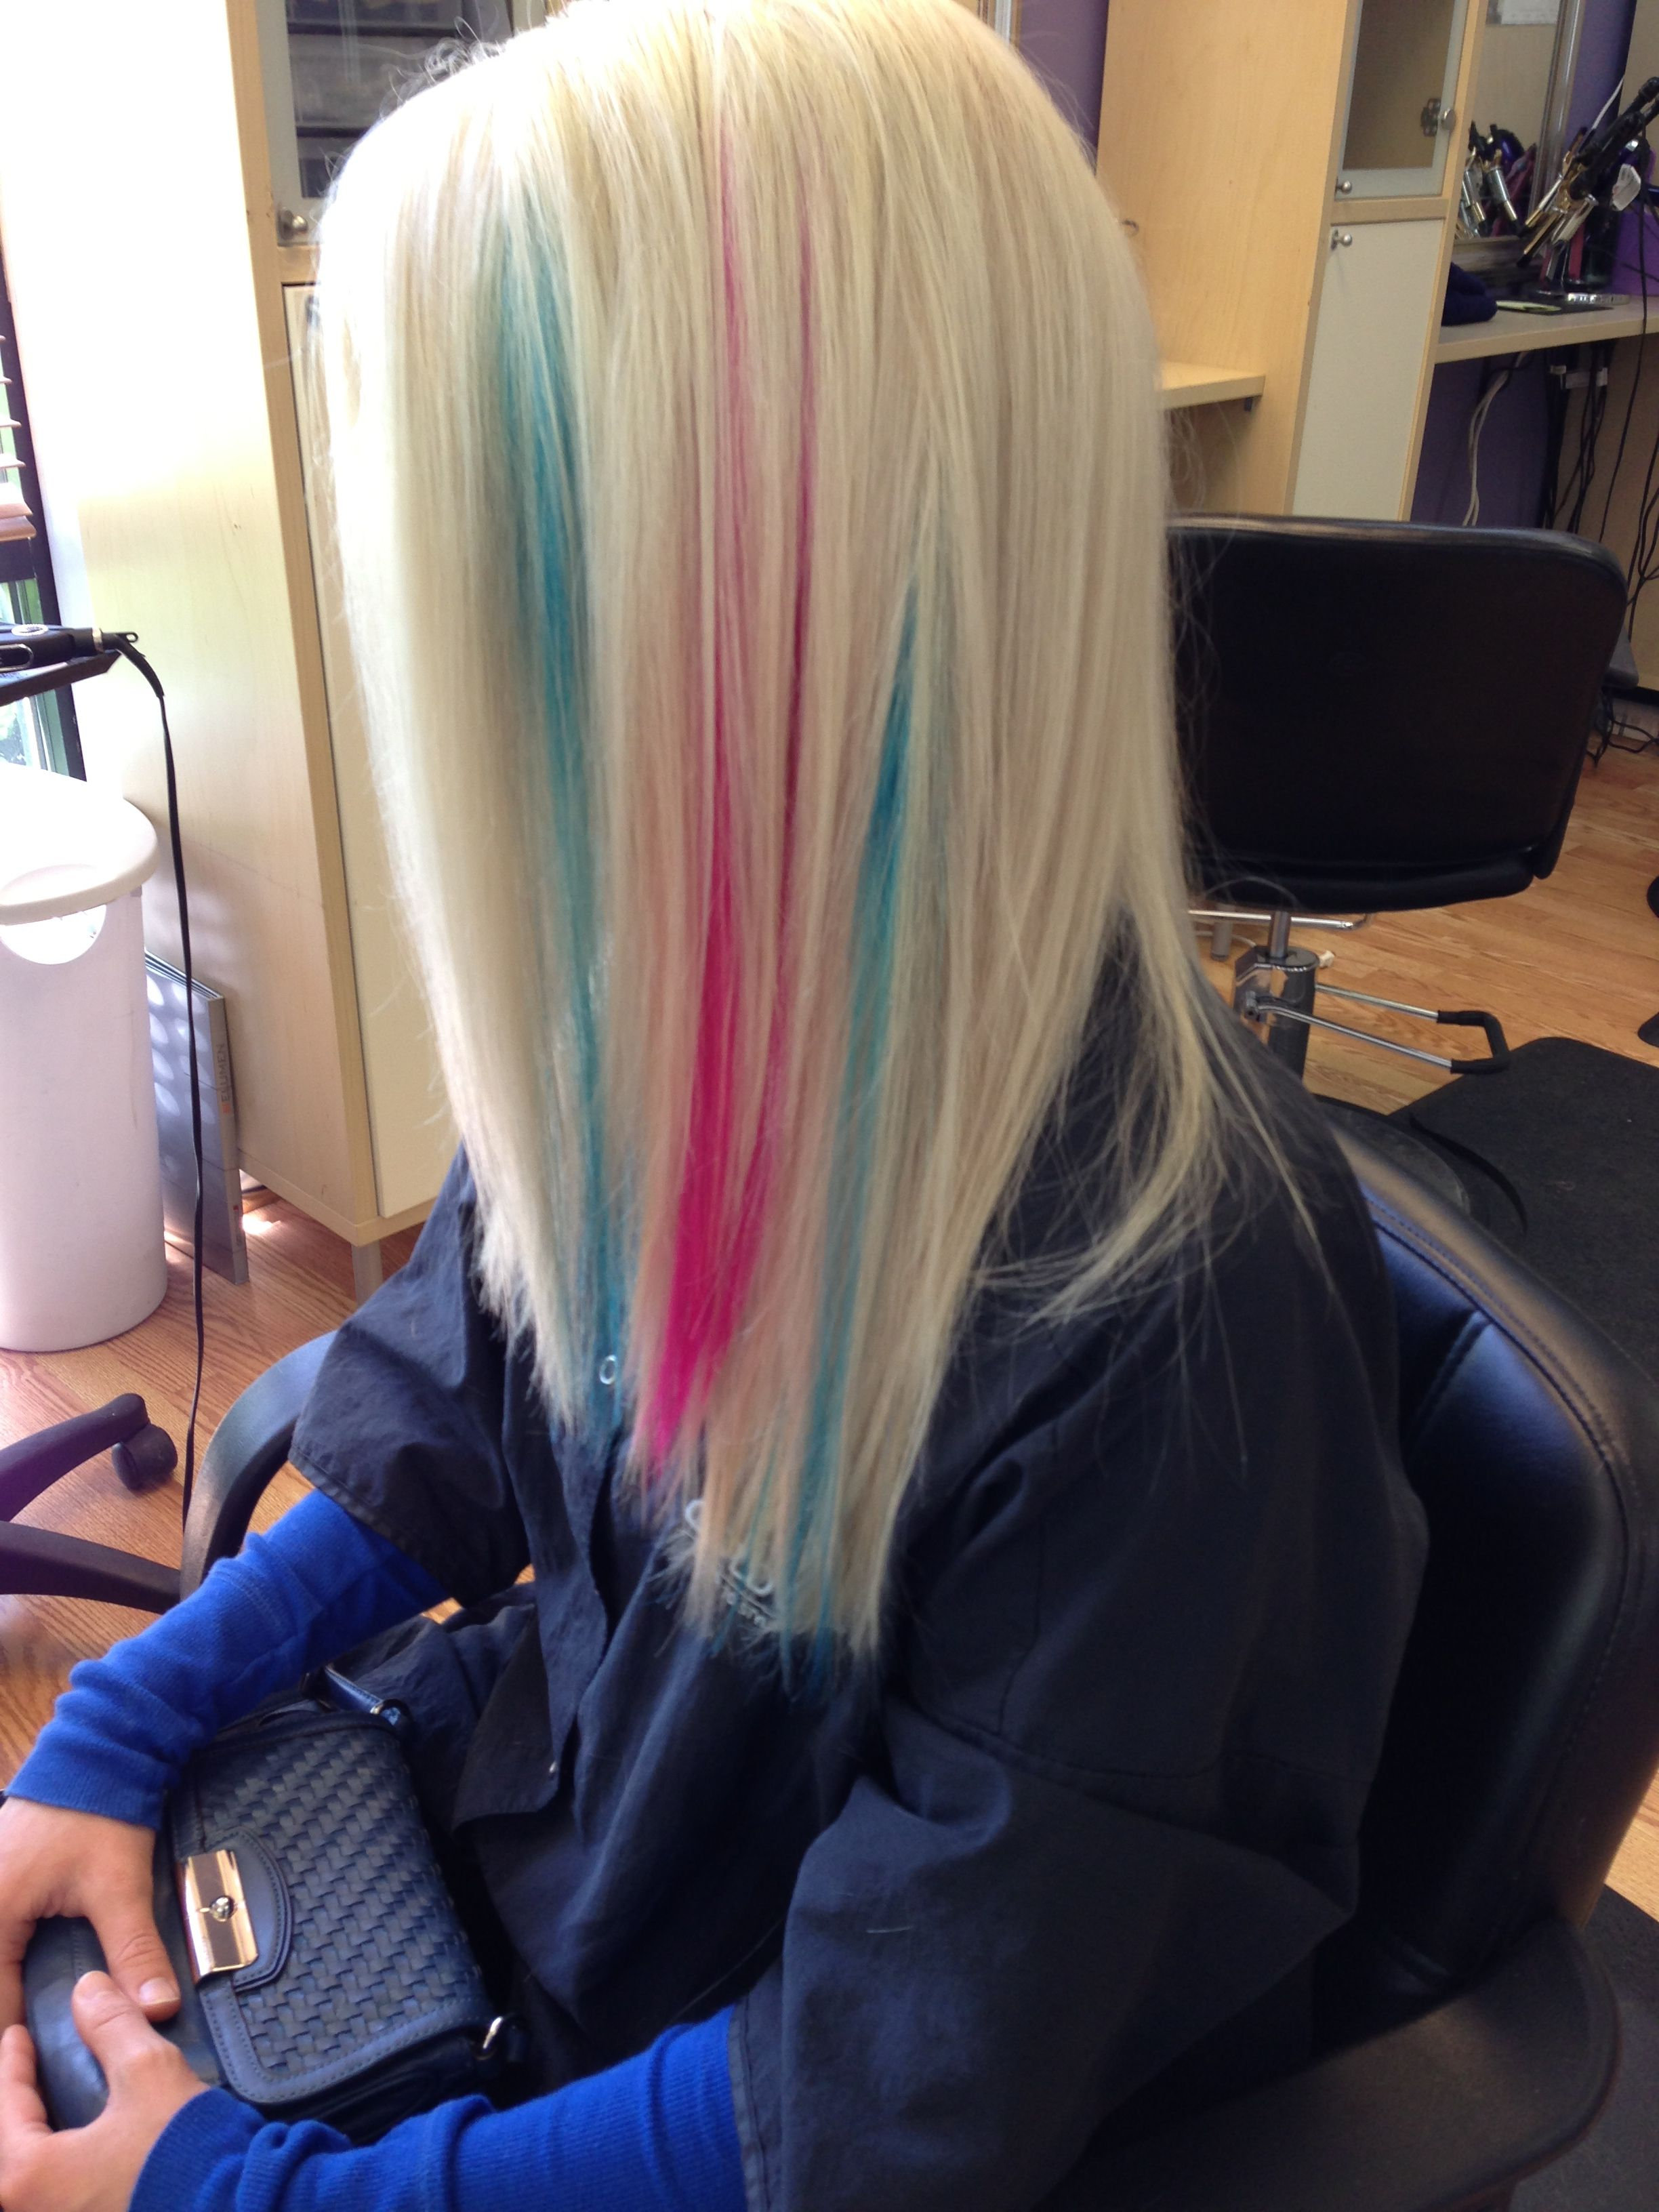 Platinum blonde with pink and teal peek a boos Colorful Hair uc